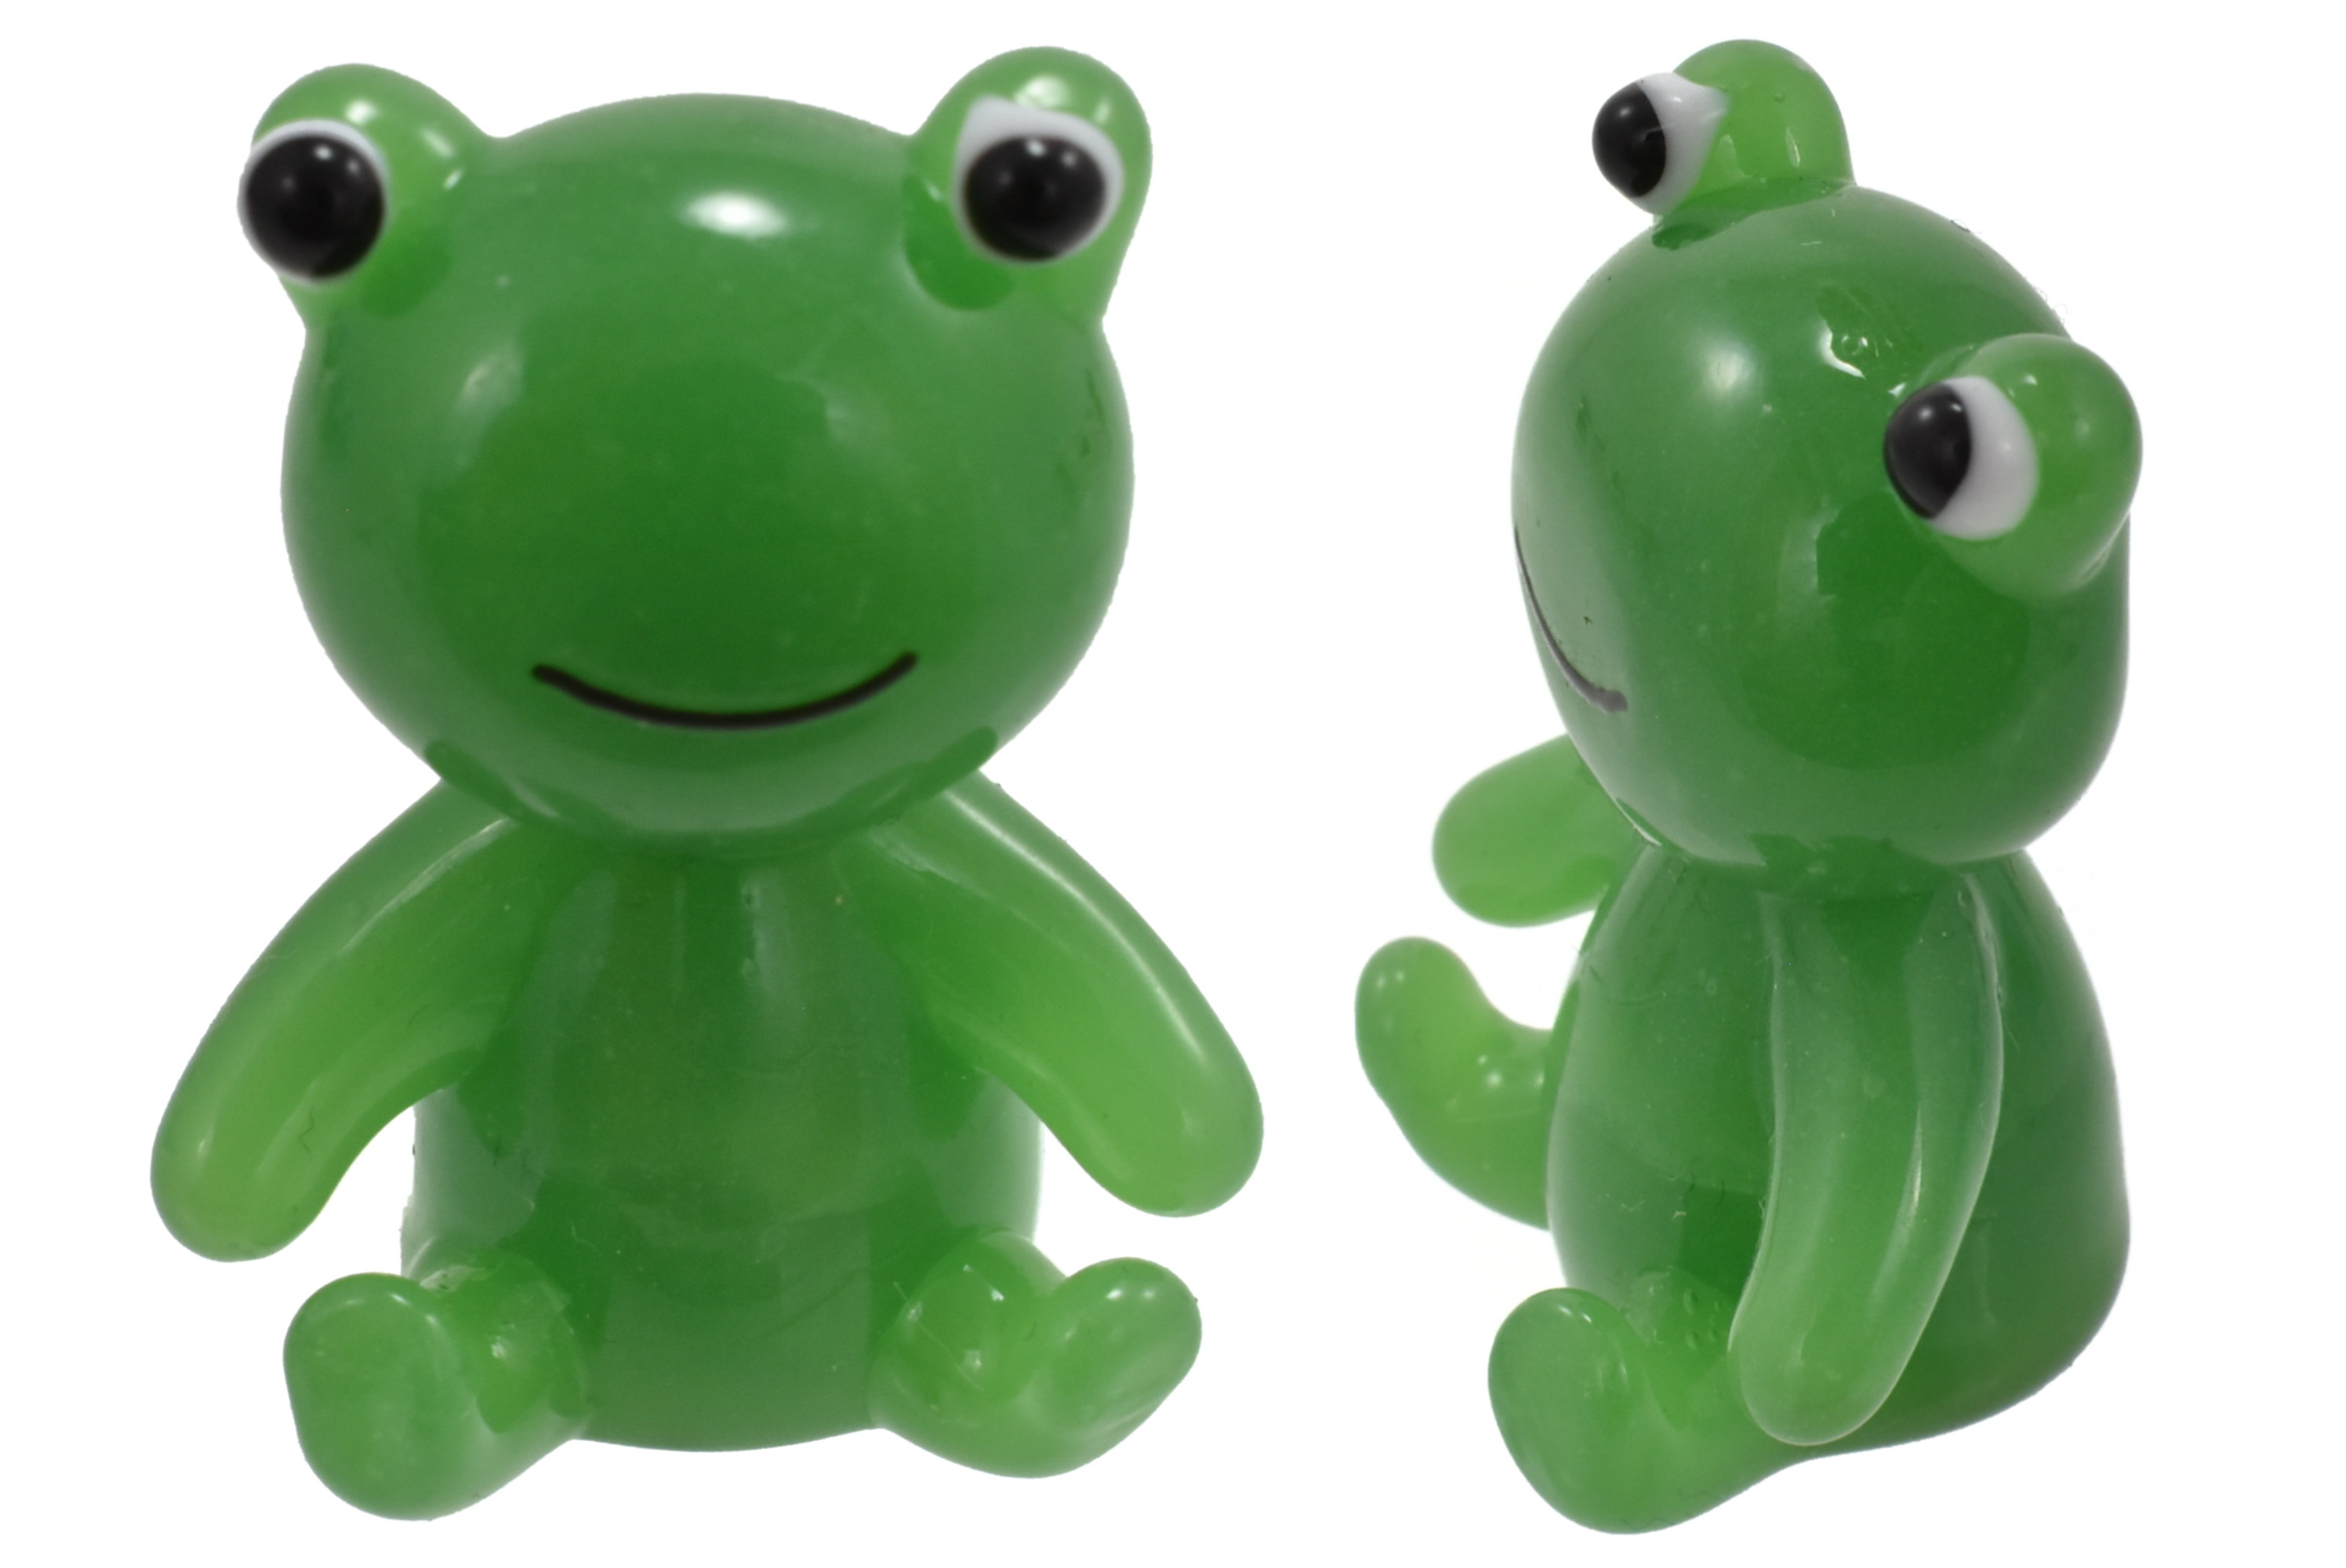 4.5cm Glass Frog Ornament